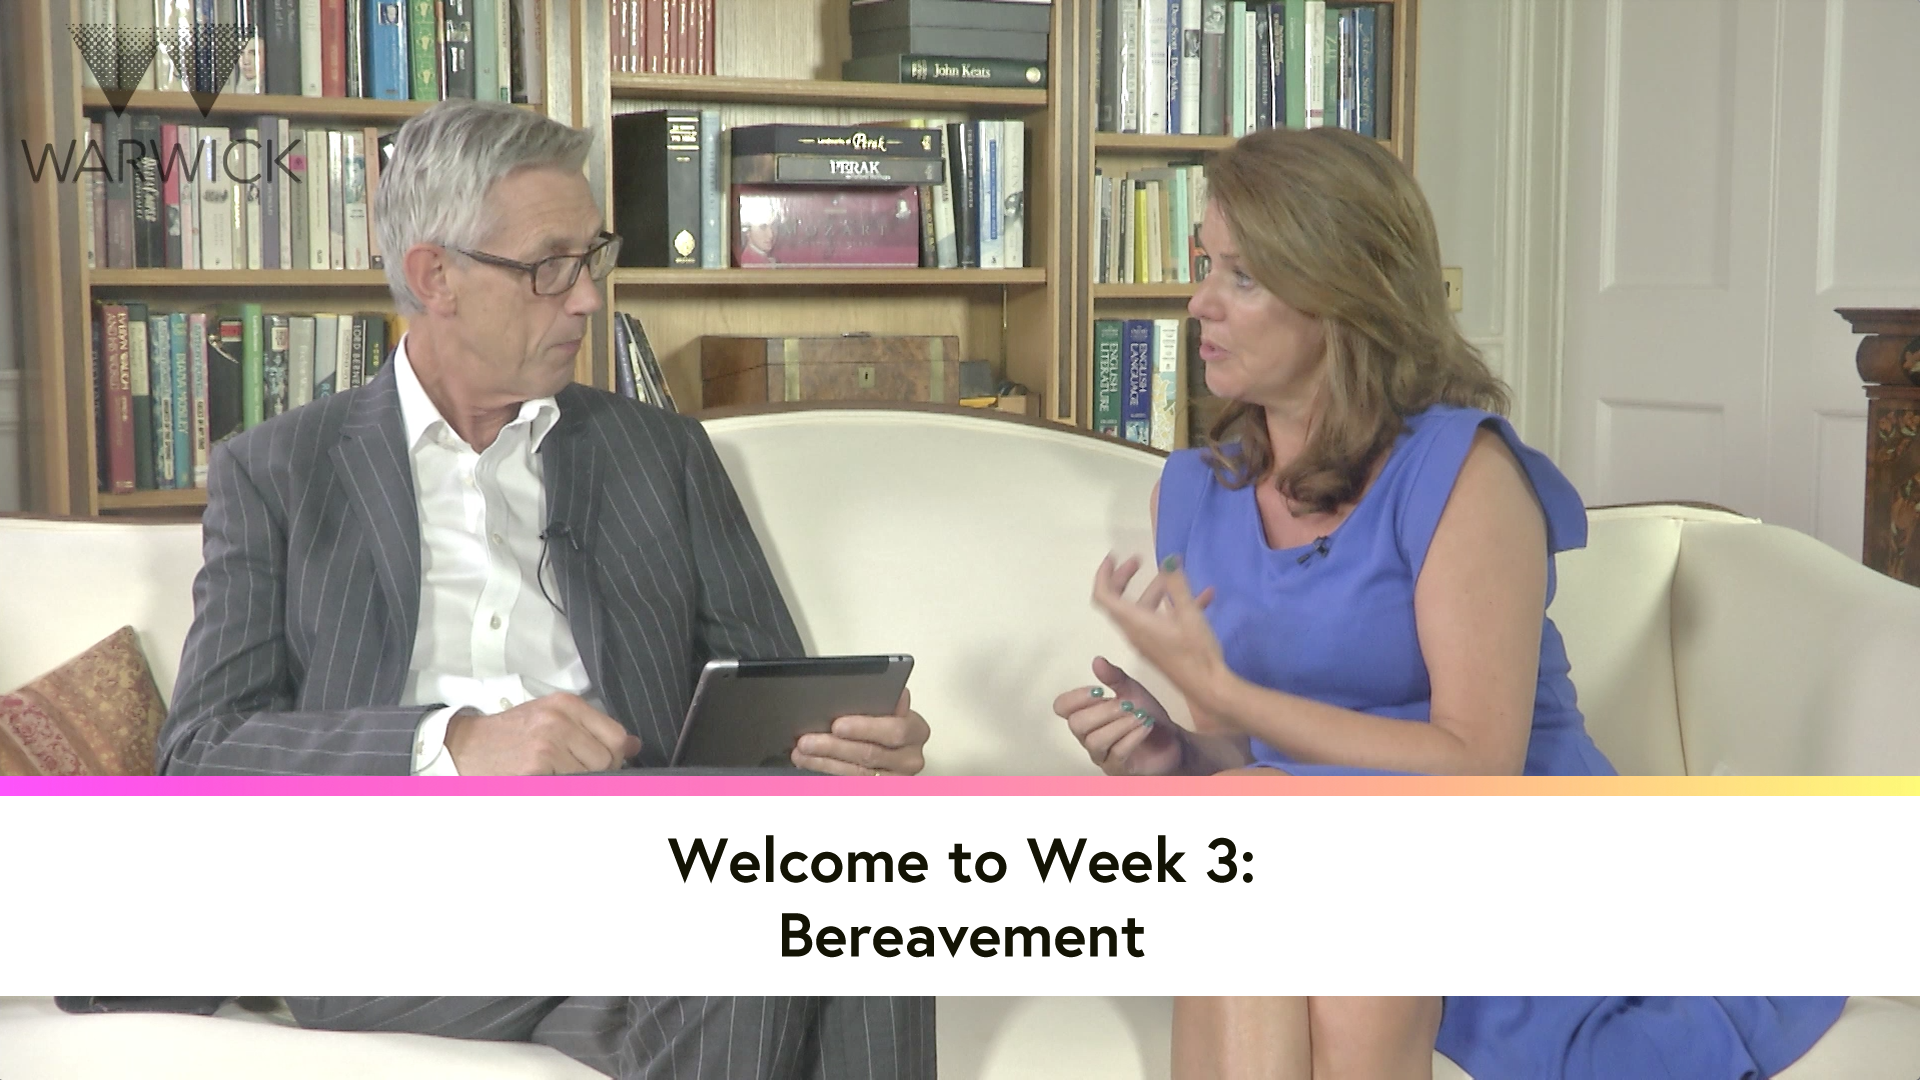 Welcome to Week 3: Bereavement